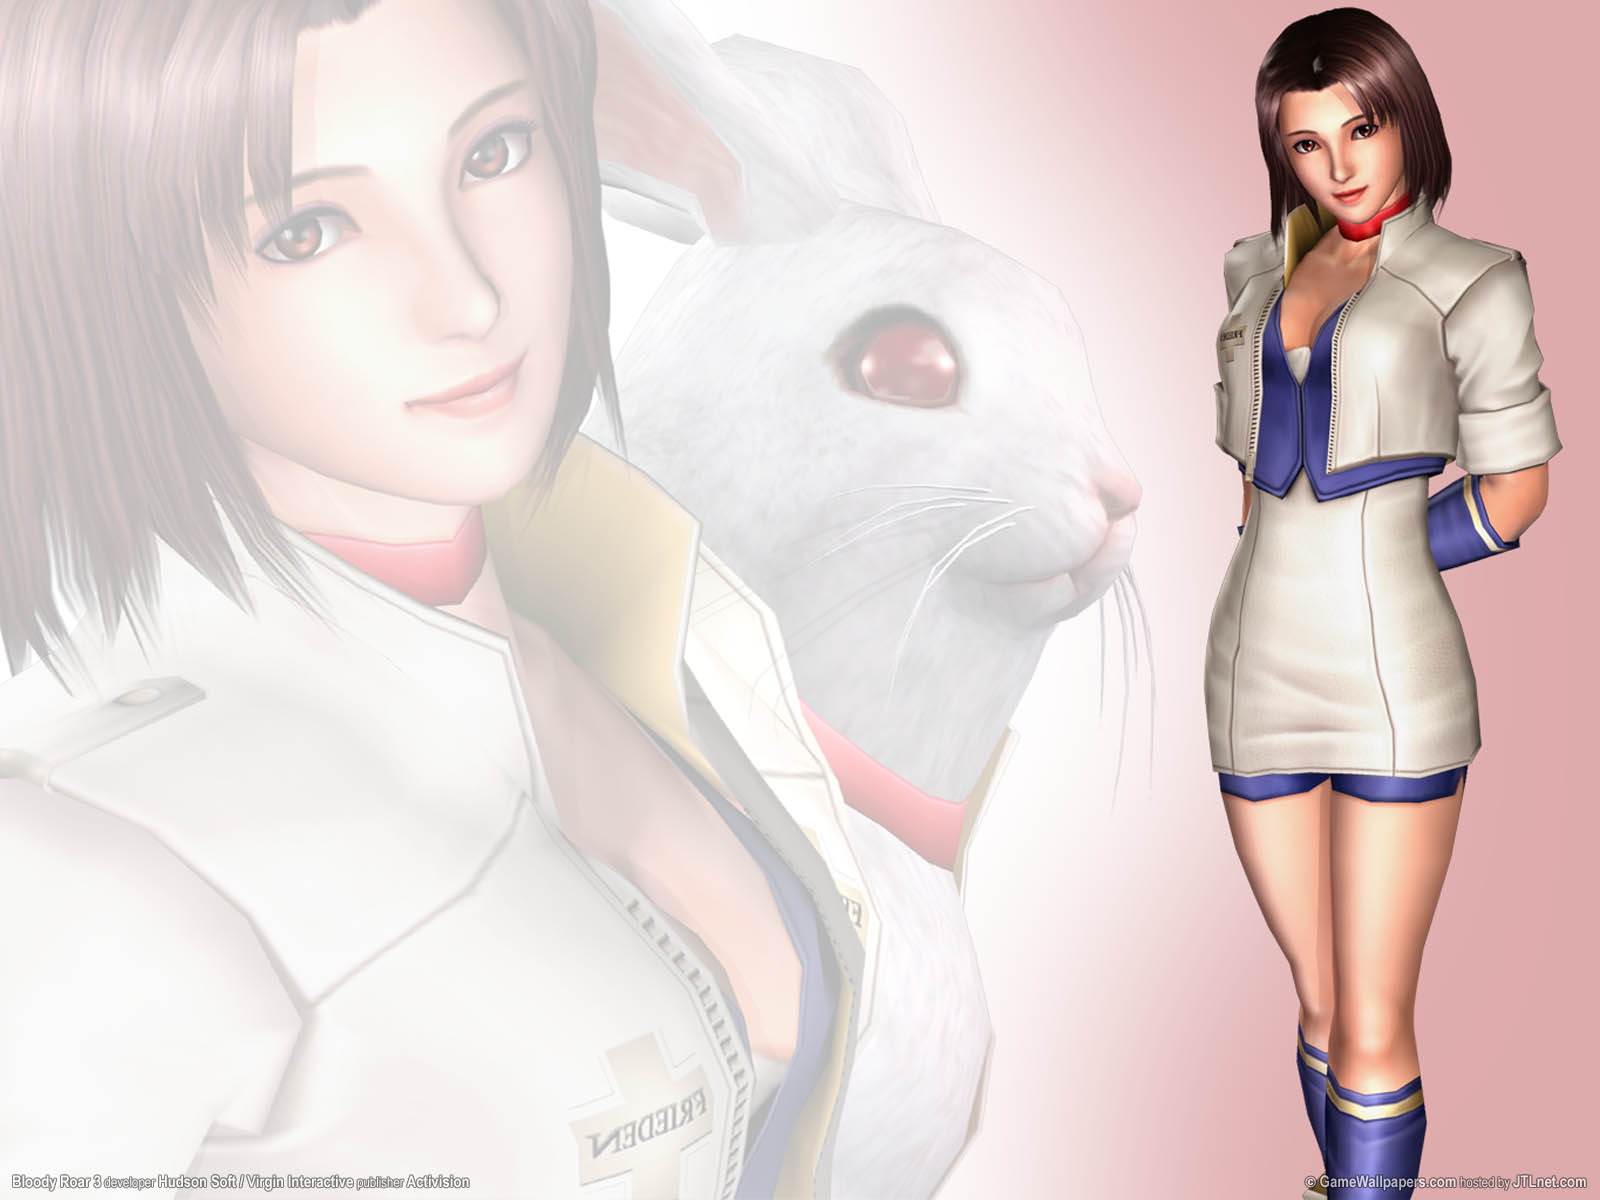 Bloody Roar 3 690.83 Kb